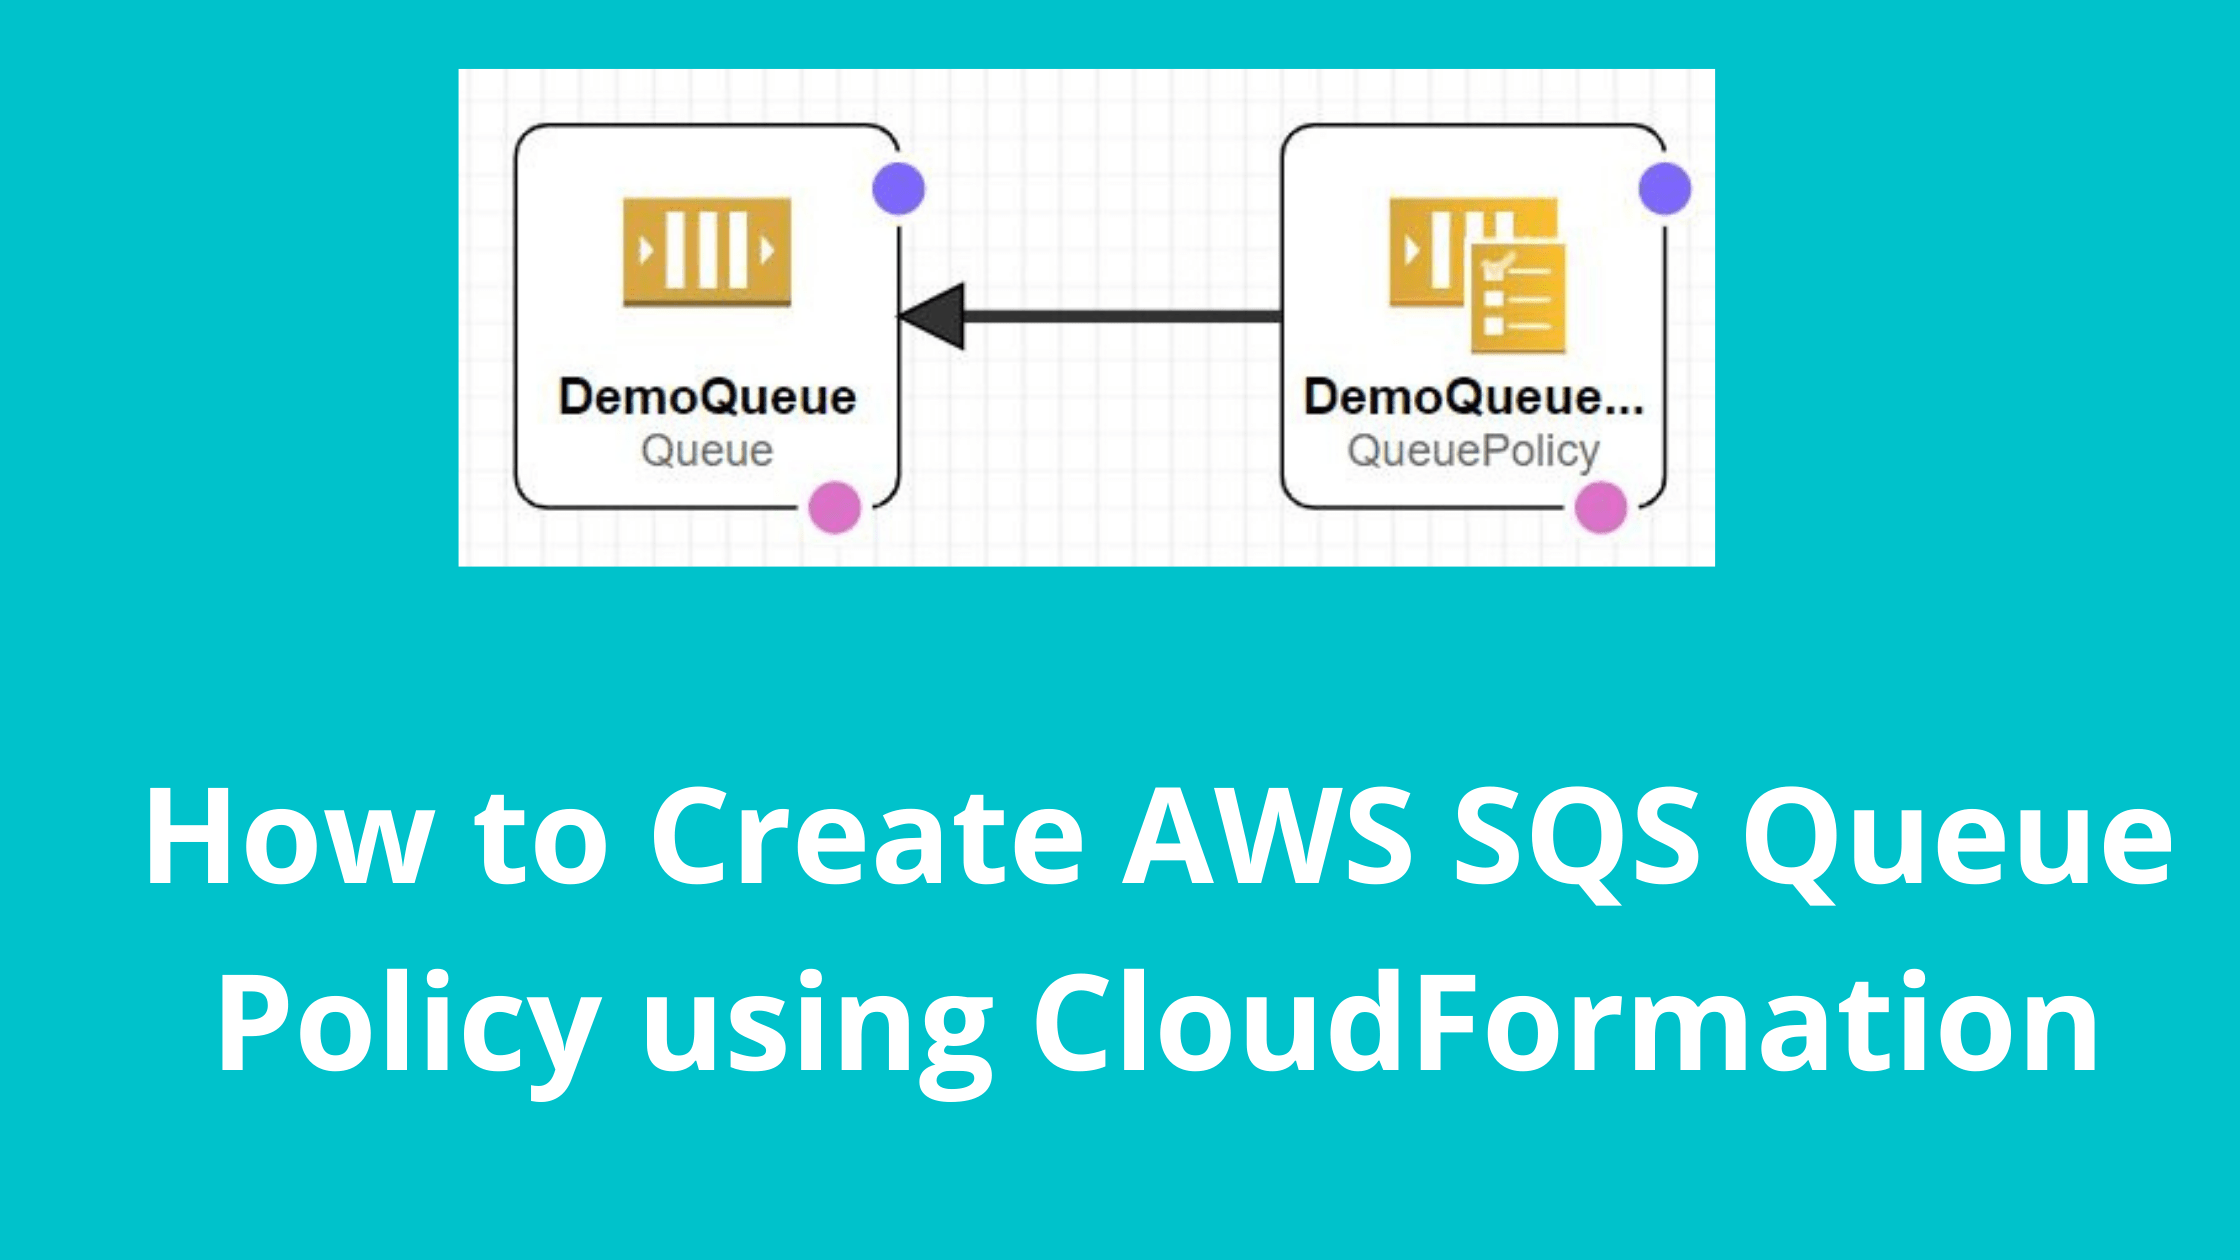 How to Create AWS SQS Queue Policy using CloudFormation